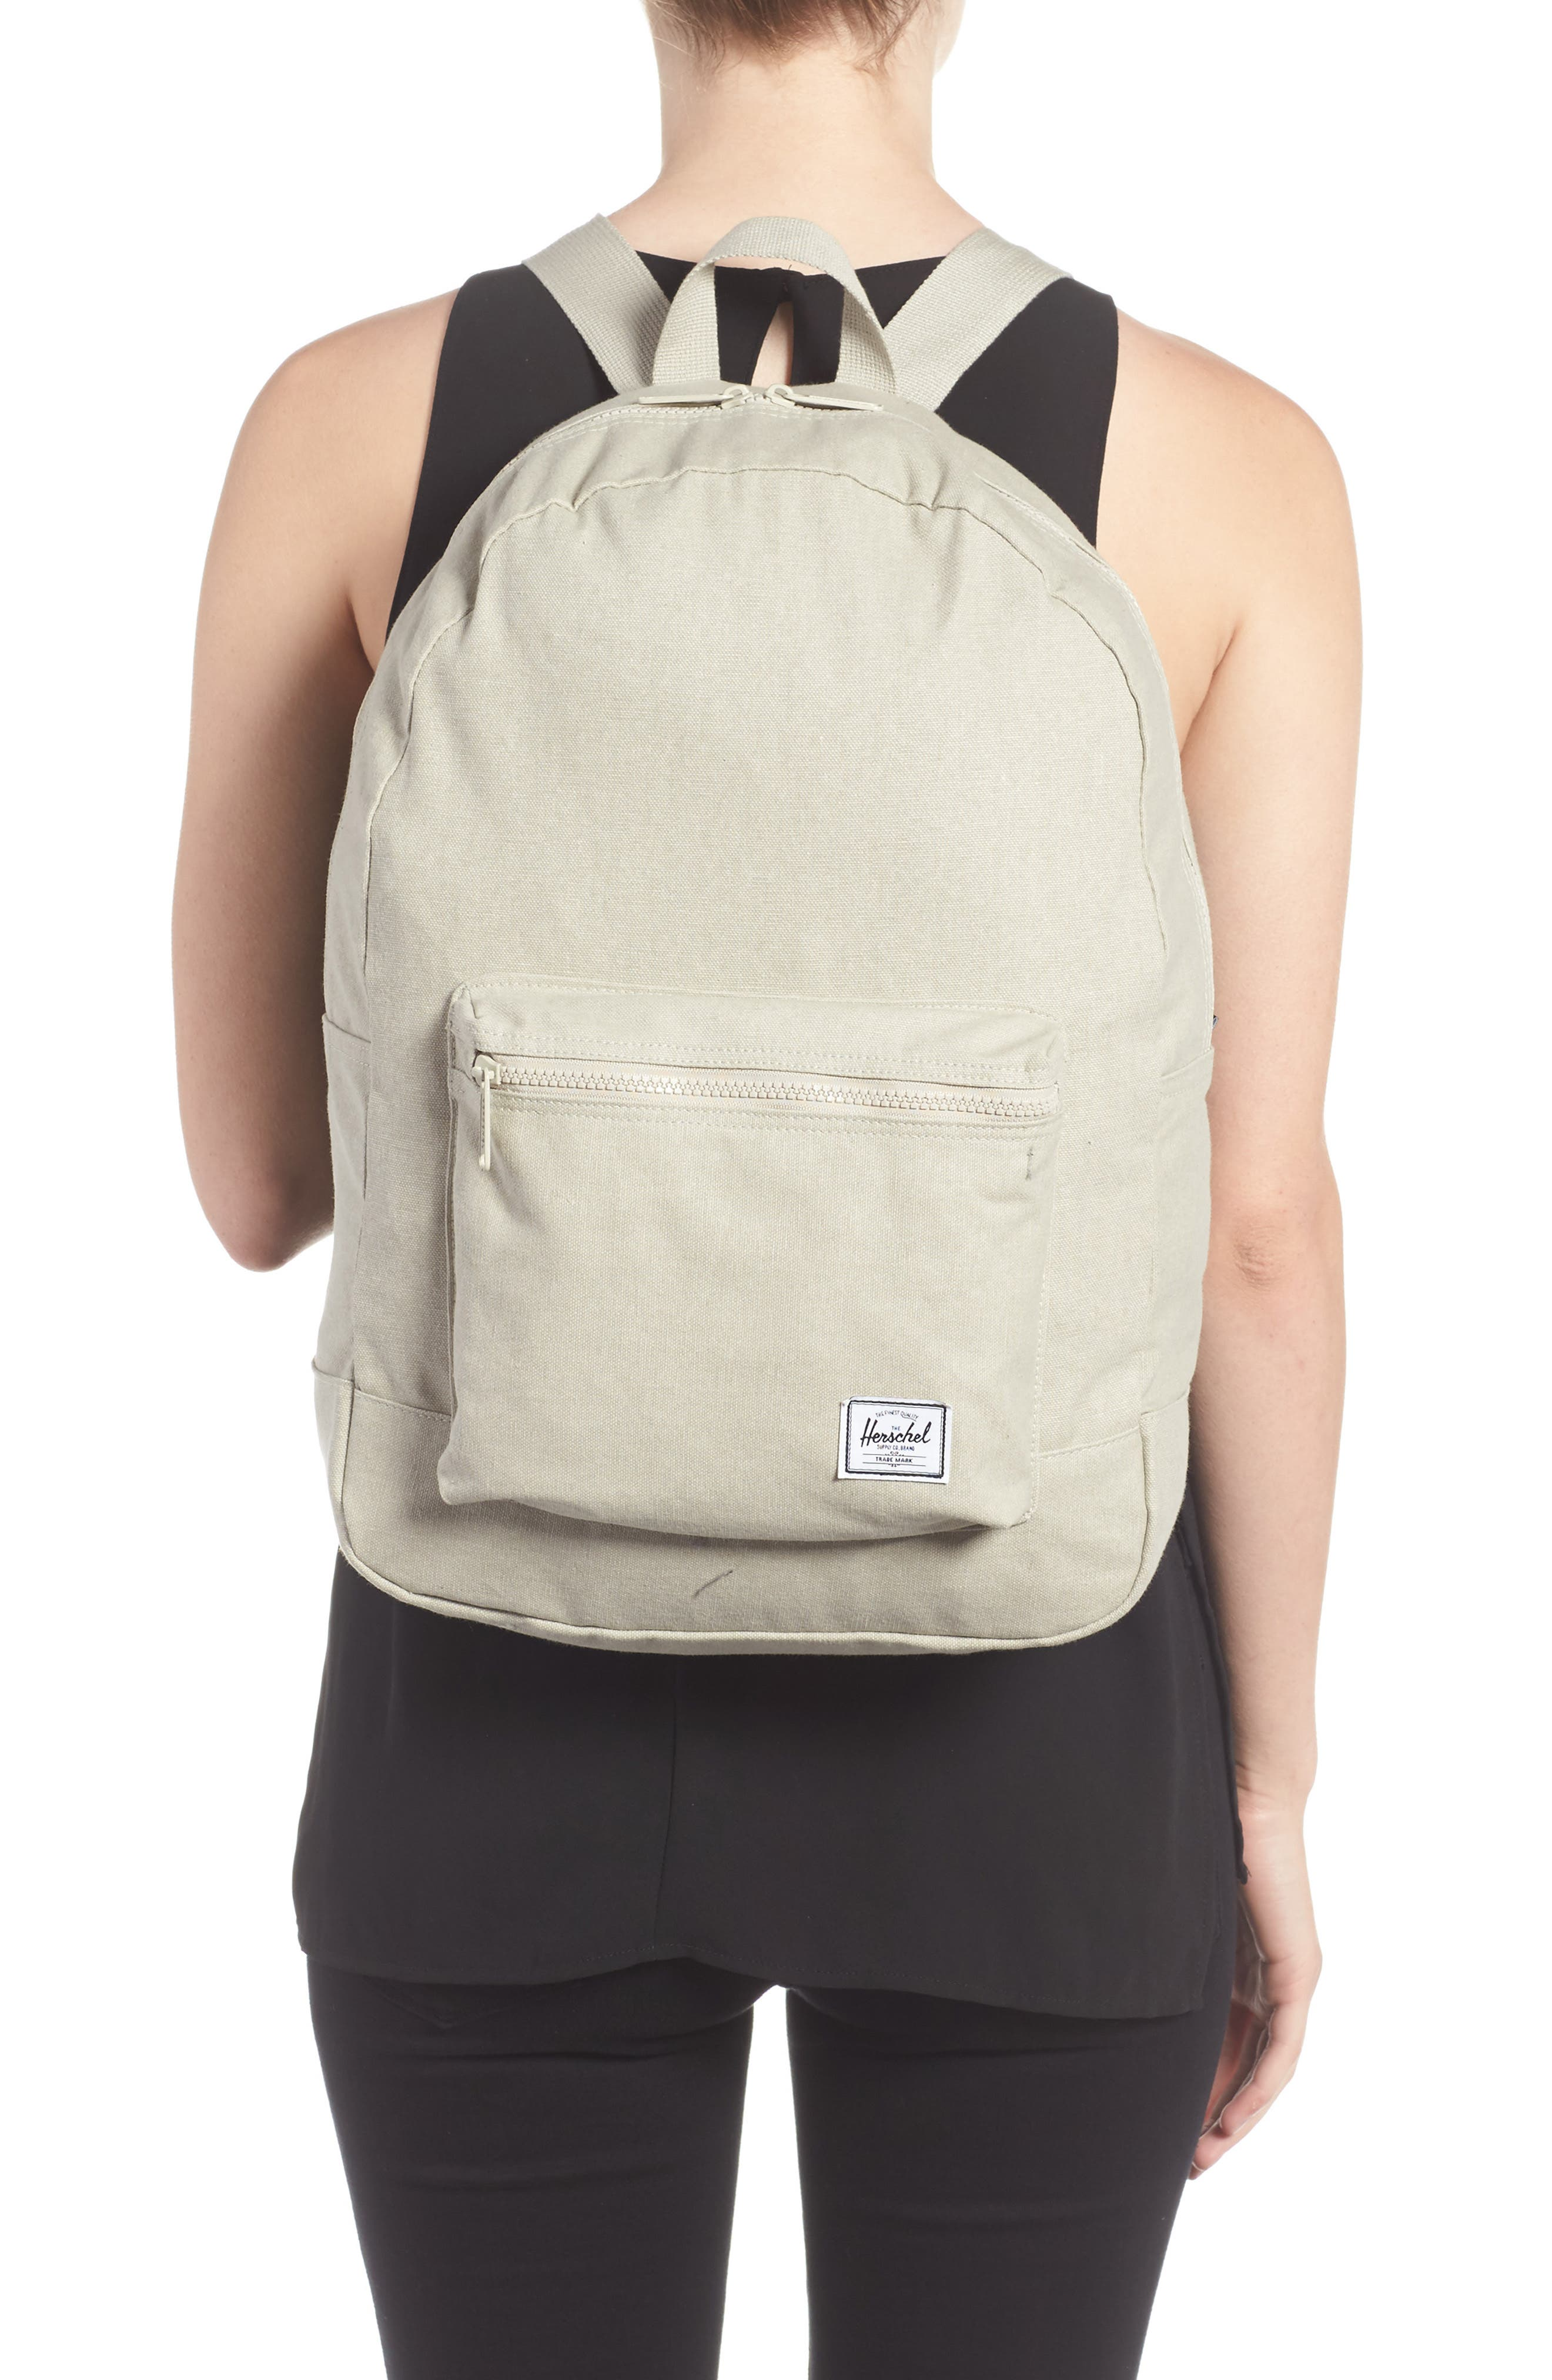 Cotton Casuals Daypack Backpack,                             Alternate thumbnail 15, color,